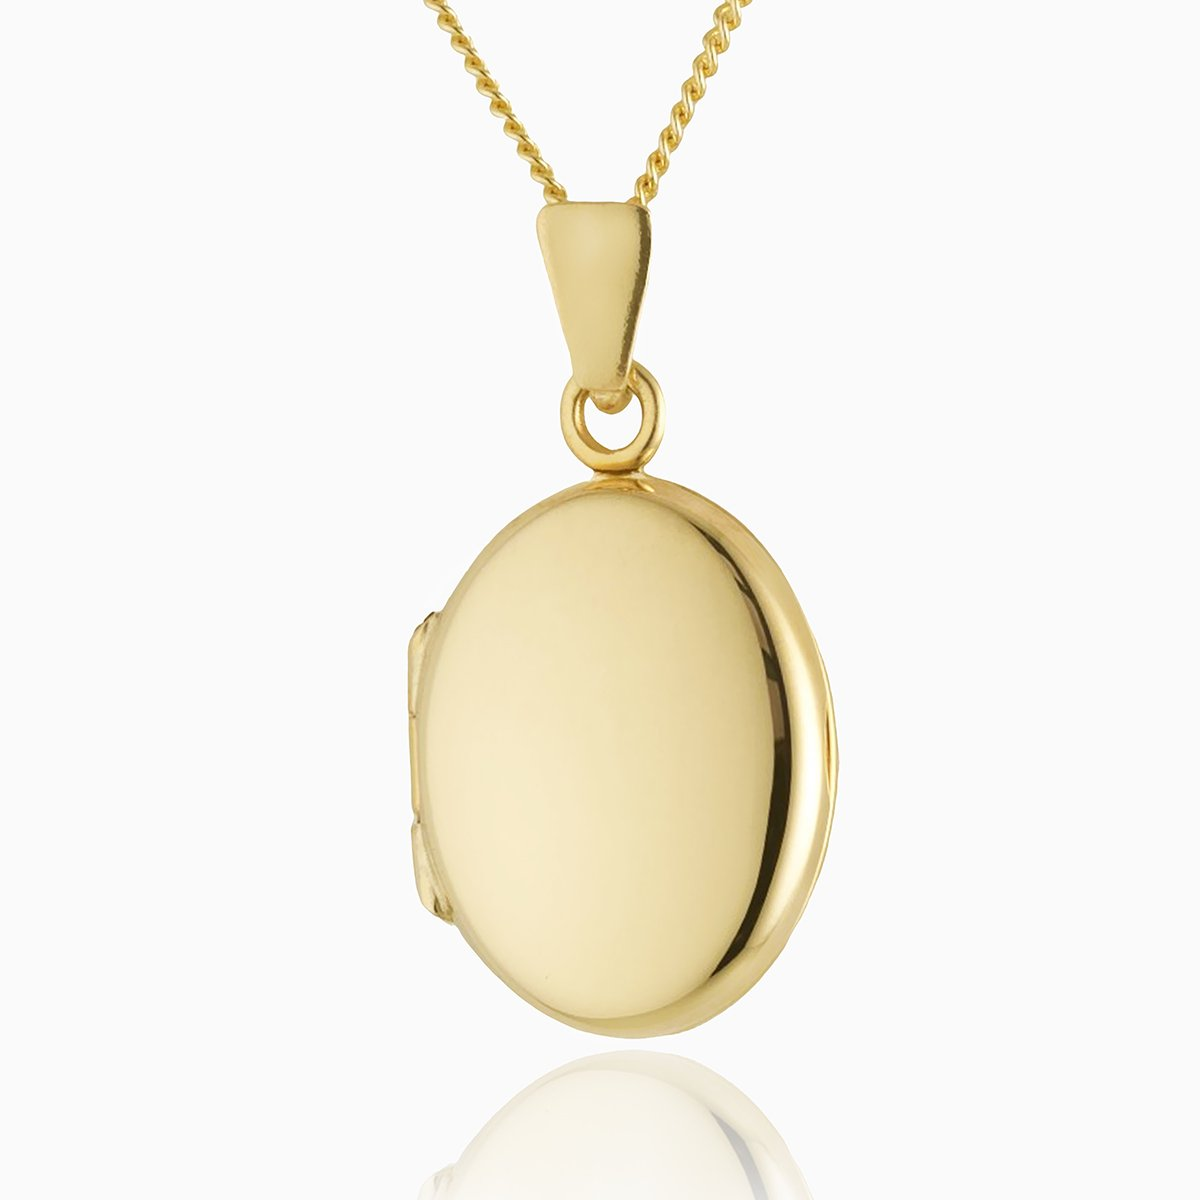 Product title: Hand Polished Petite Gold Oval Locket 16mm, product type: Locket